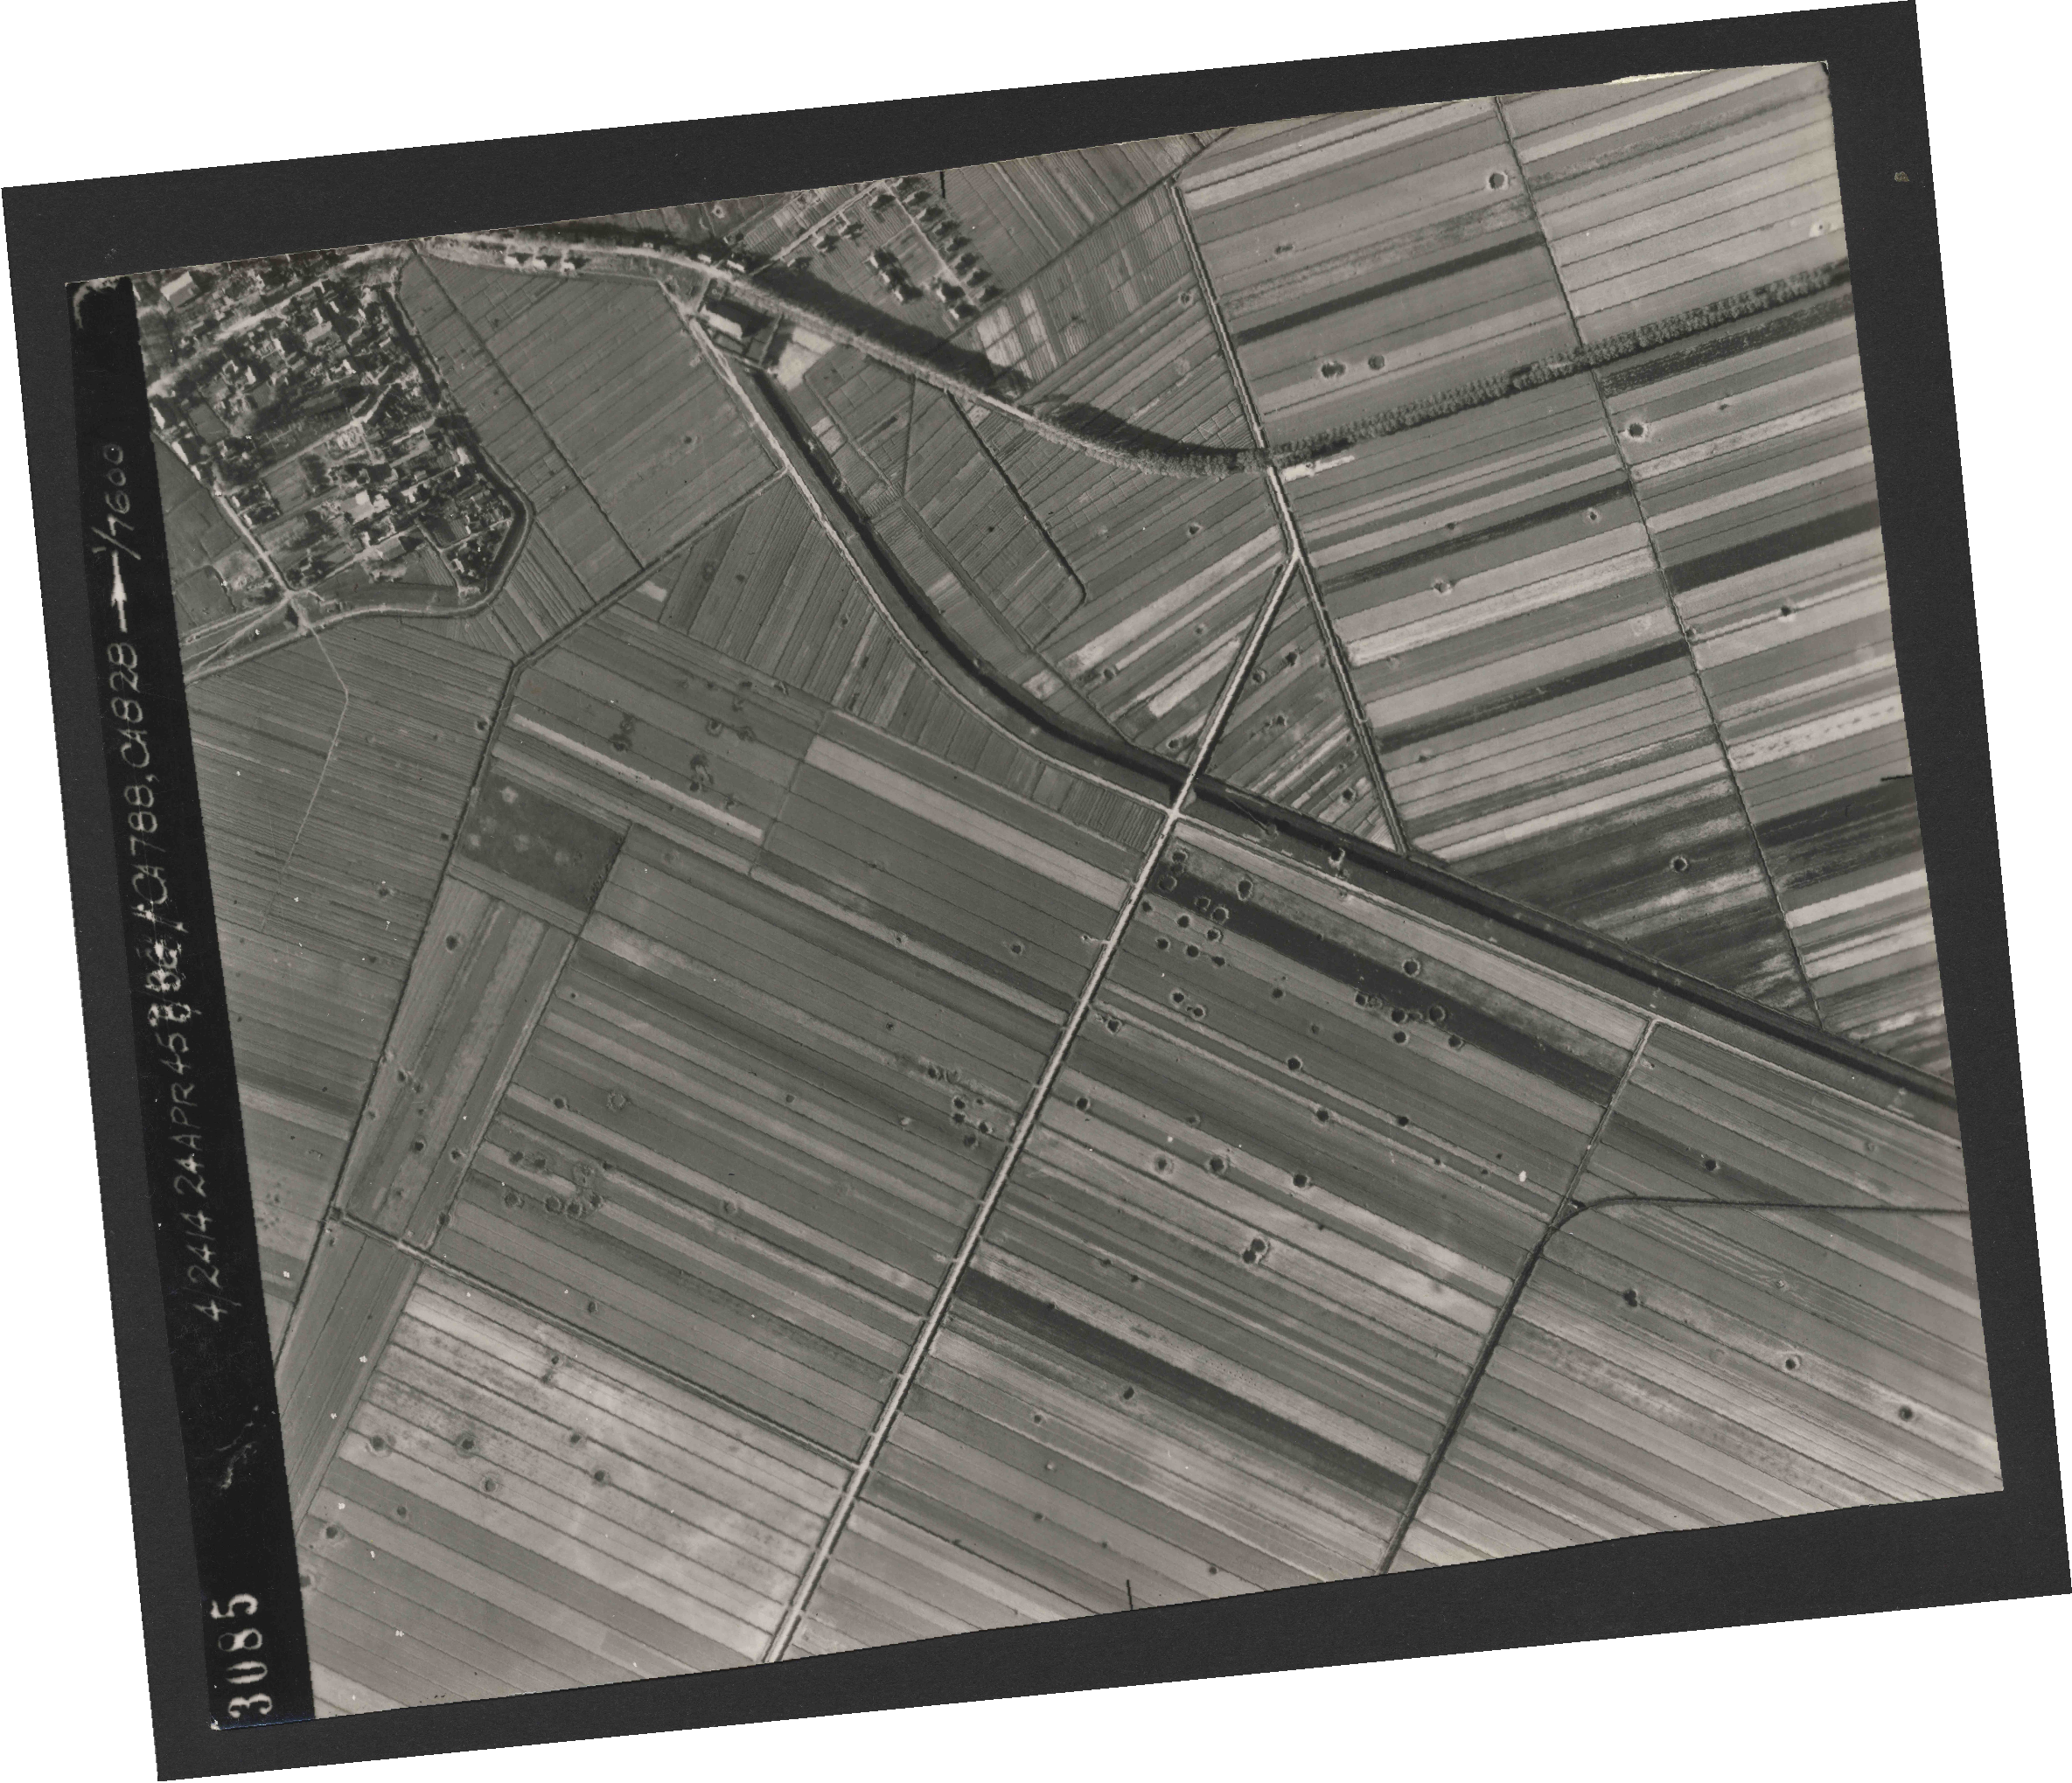 Collection RAF aerial photos 1940-1945 - flight 111, run 11, photo 3085